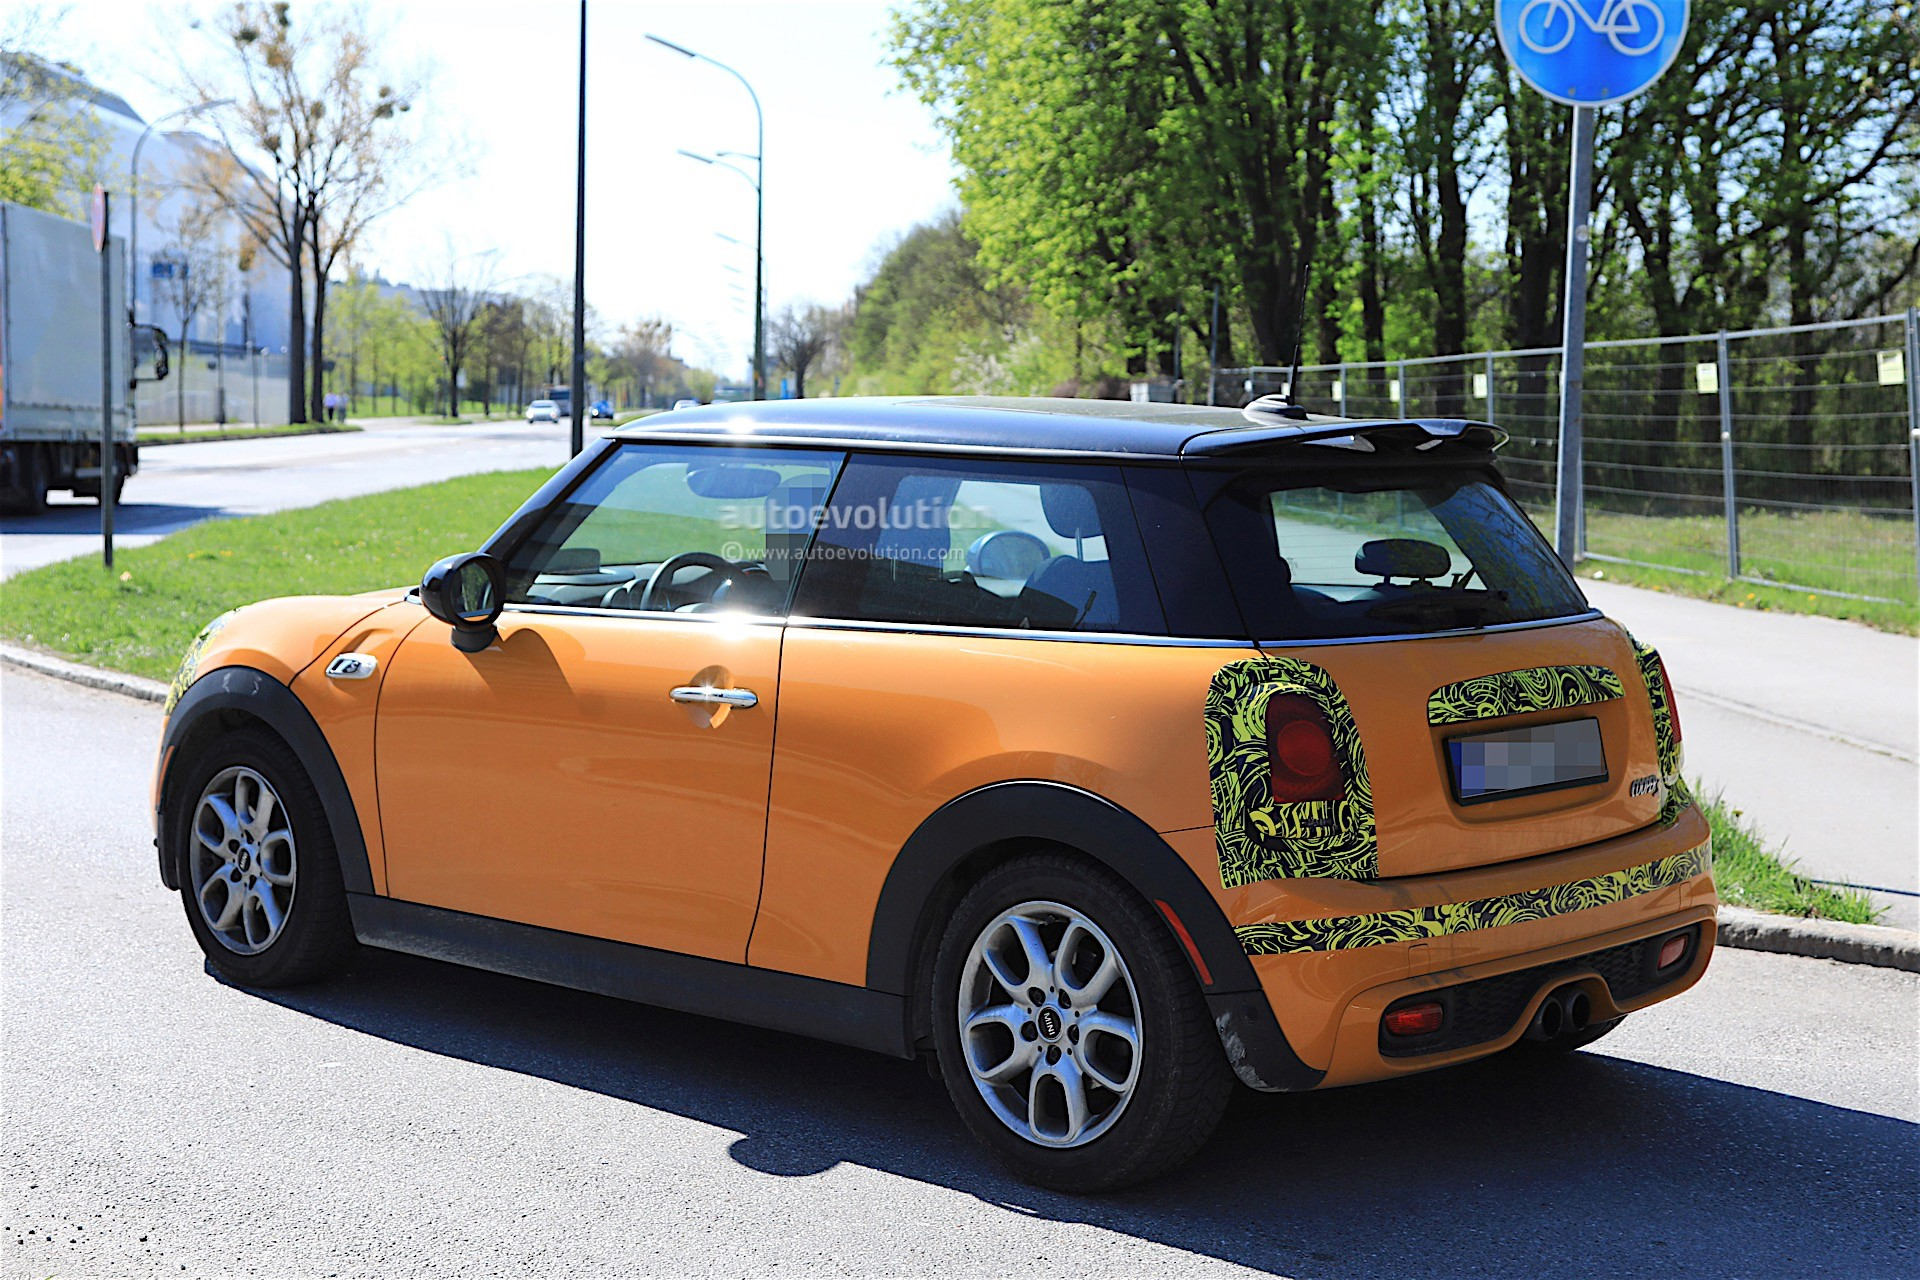 2018 Mini Cooper S Facelift Spotted Testing It Has Minor Changes Autoevolution